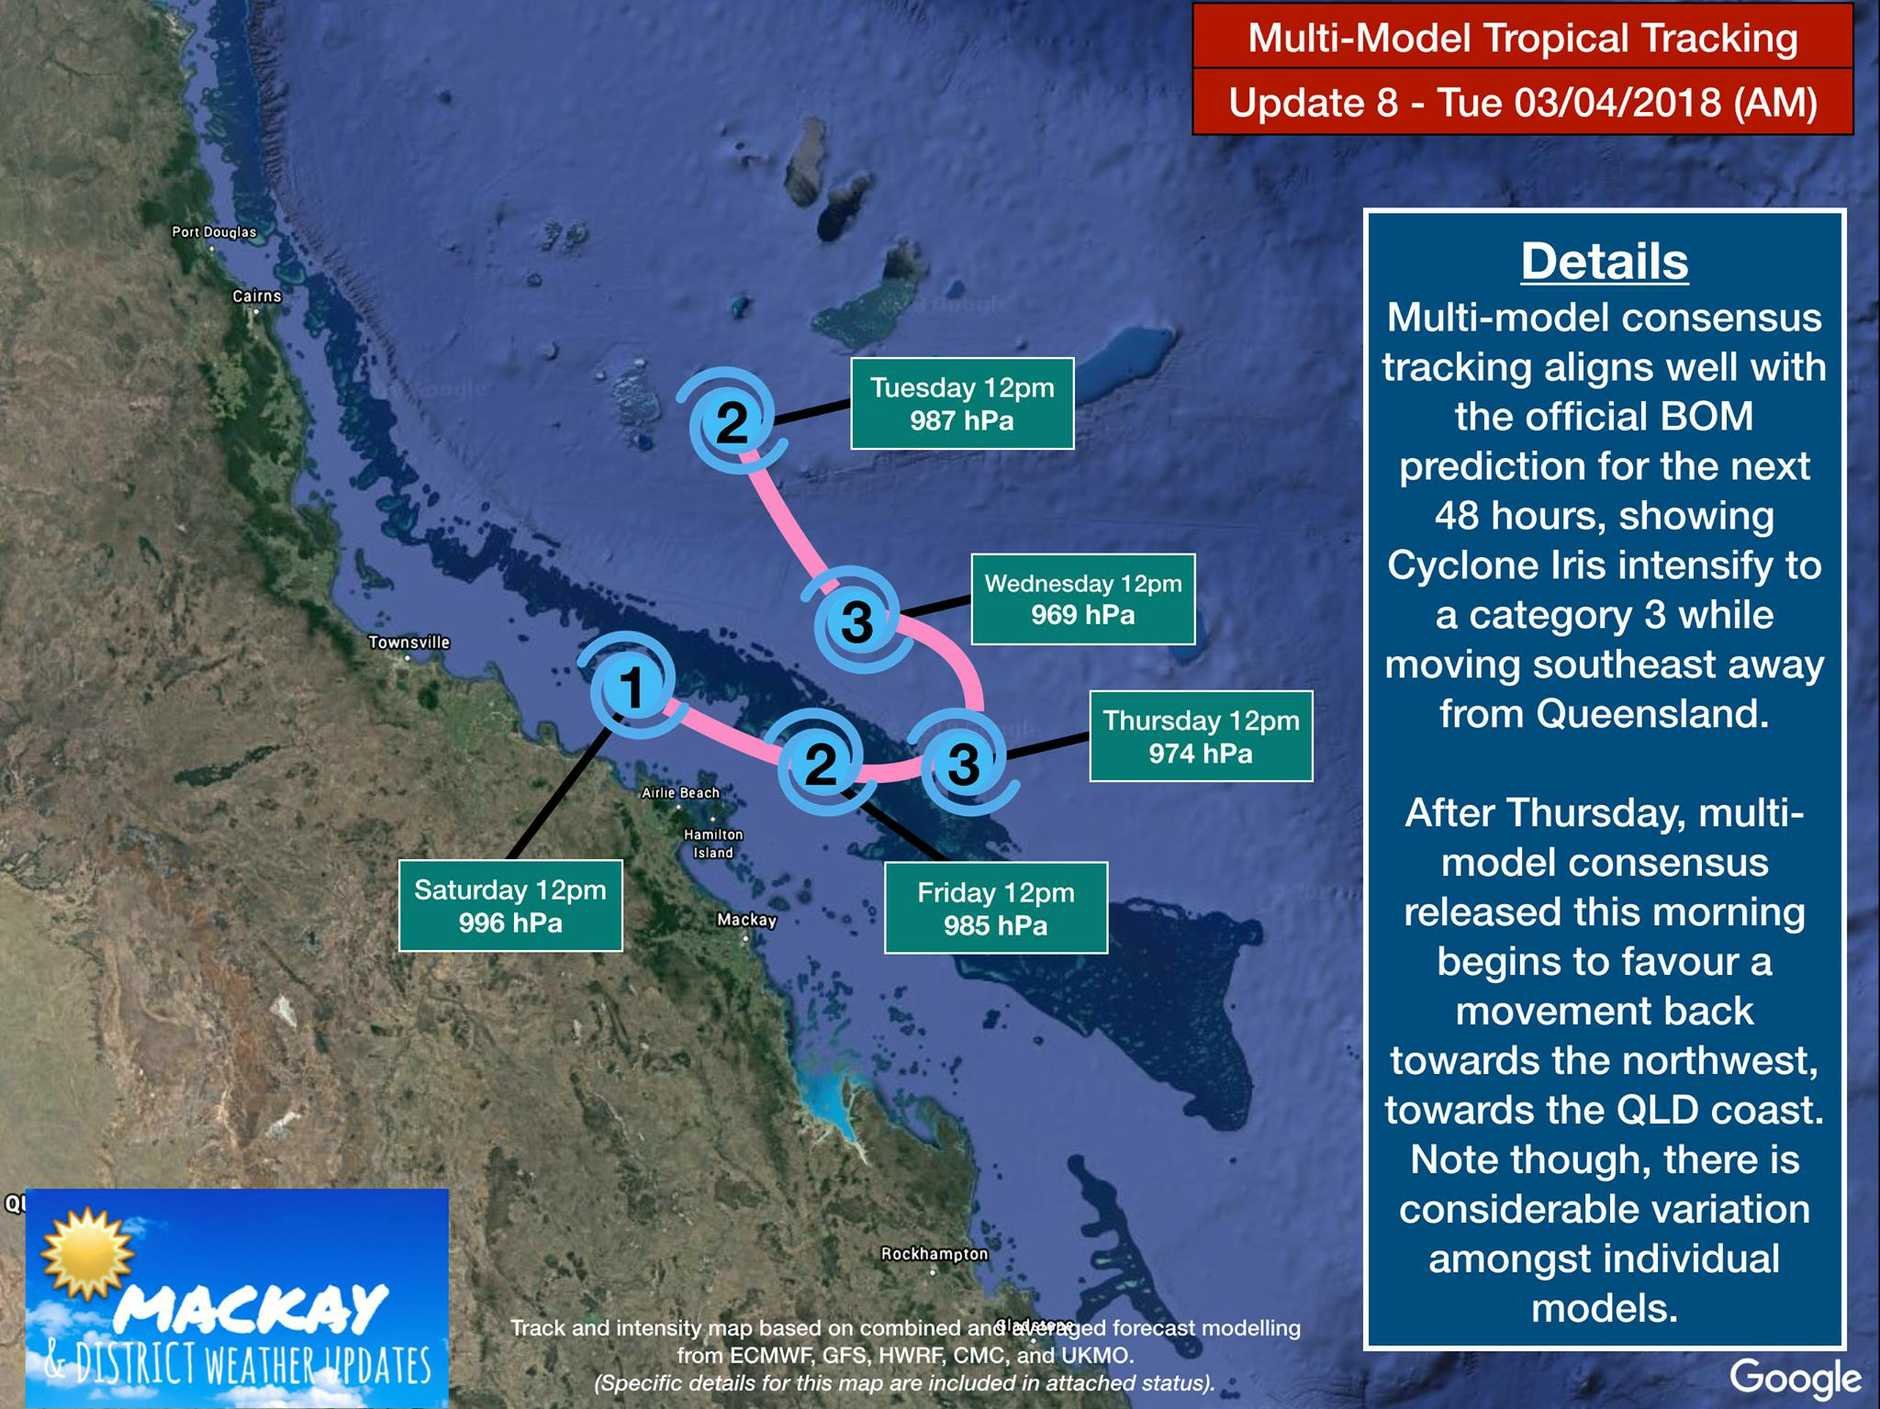 Mackay & District Weather Updates released a forecast track map based on a number of models. They said